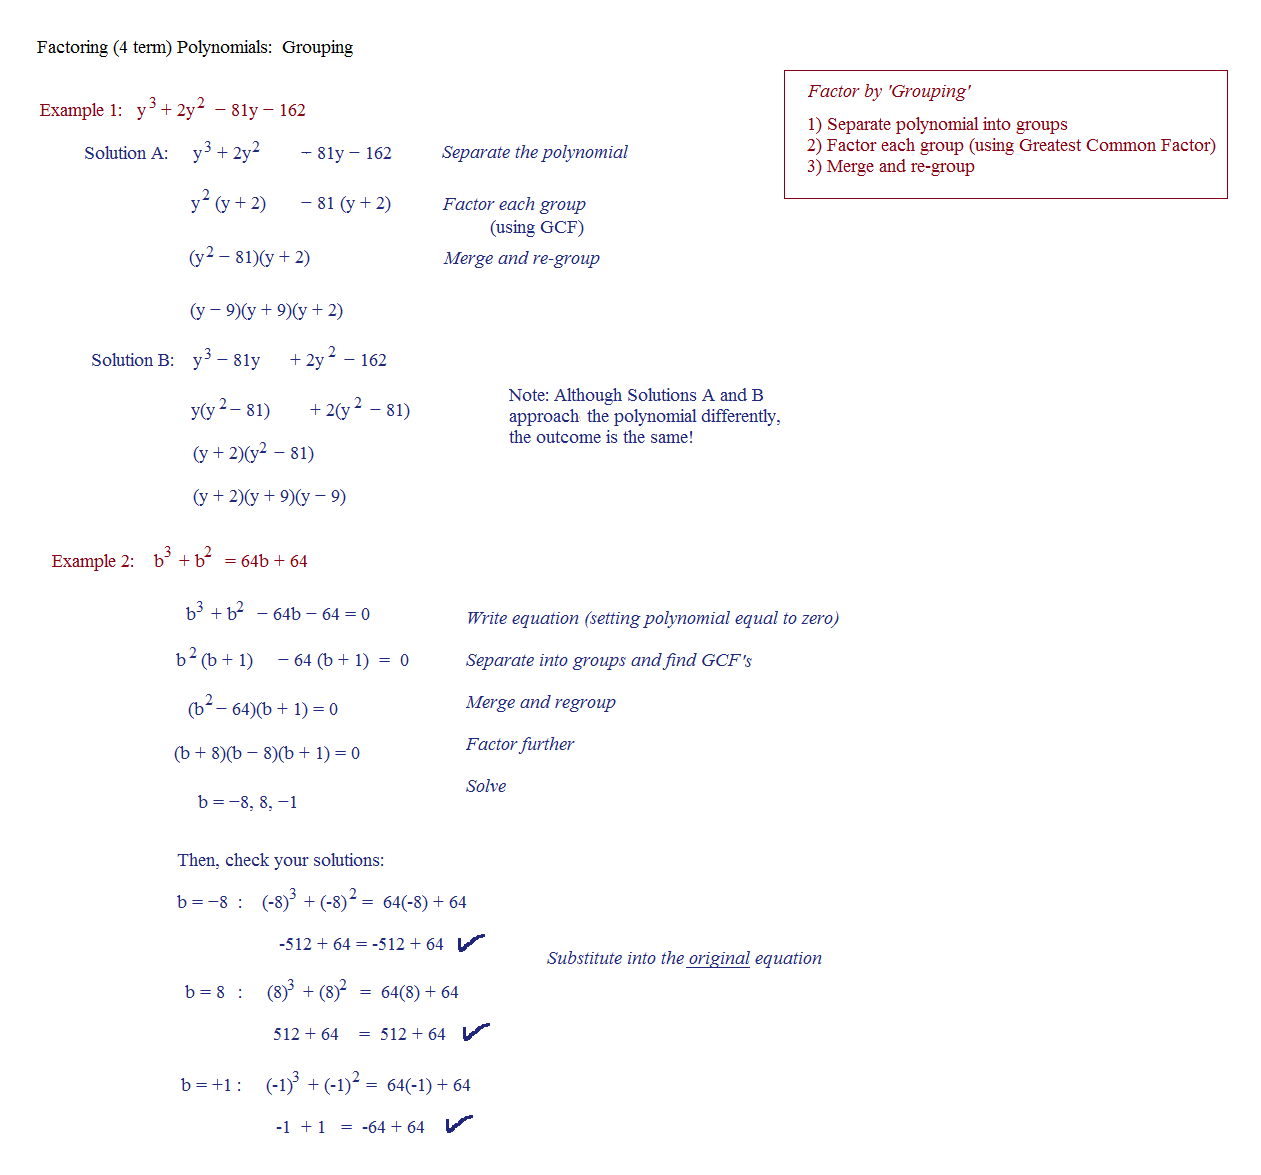 Factoring By Grouping Worksheet Algebra 2 Answers With